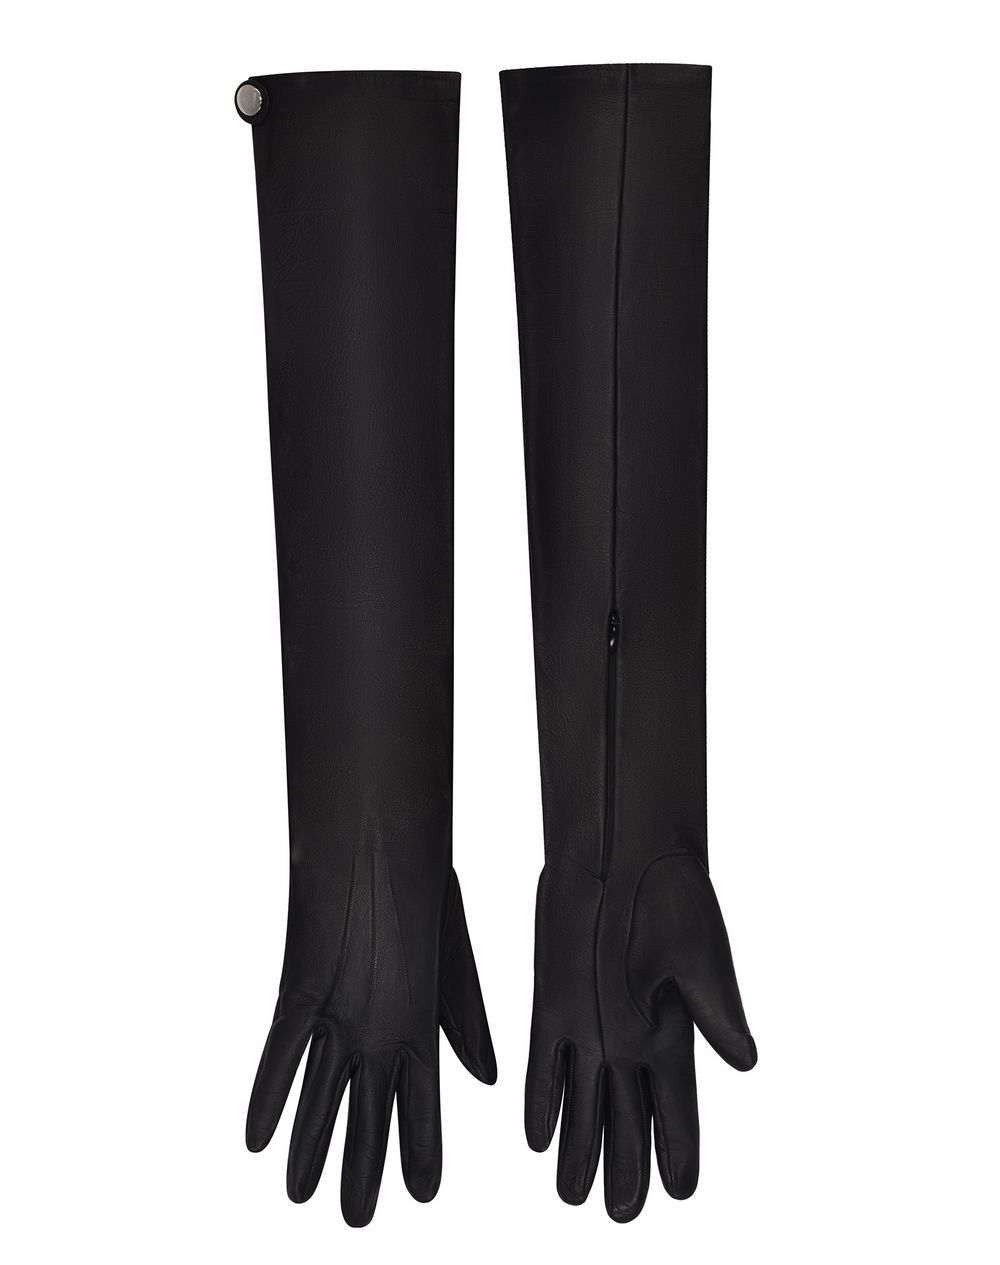 LONG OPERA GLOVES IN NAPPA LEATHER - Lanvin